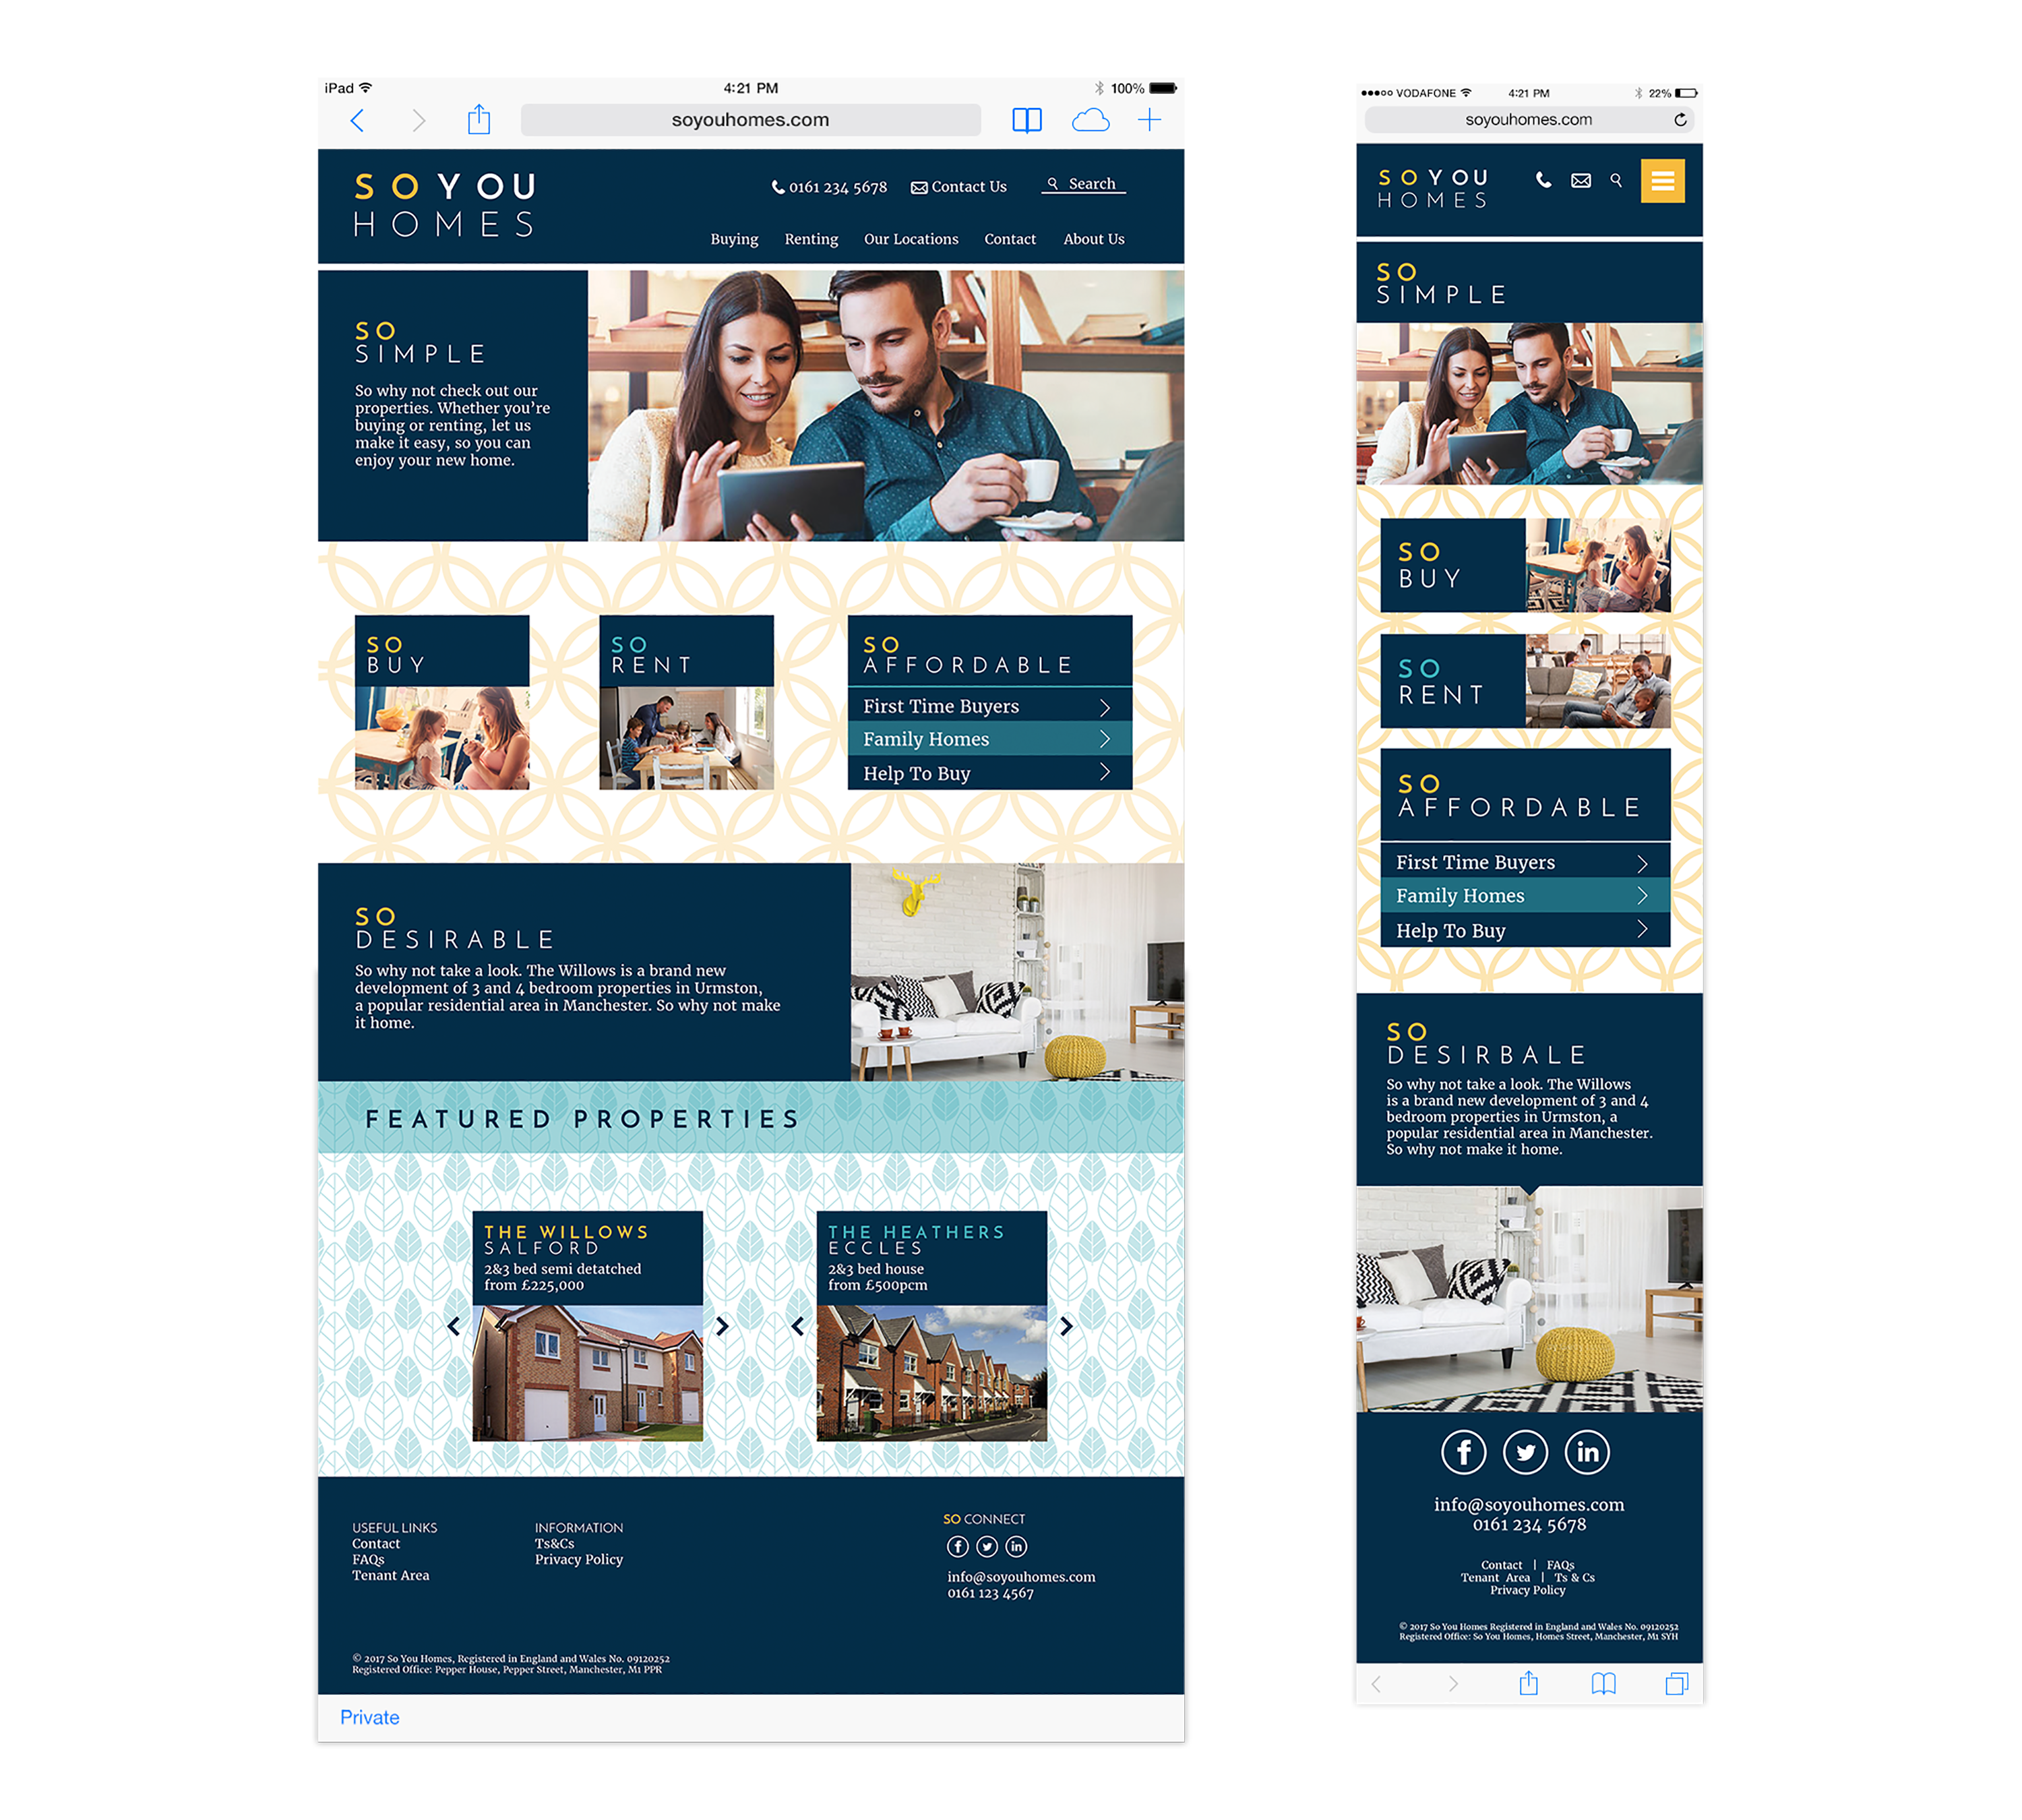 So you homes website home page desktop and mobile site